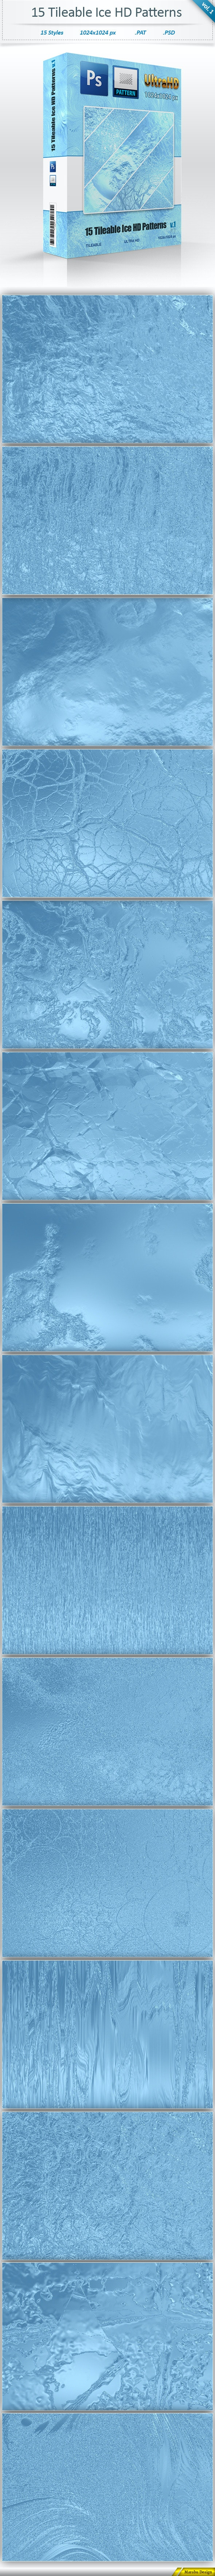 Ice Tileable Pattern Backgrounds (vol 1) - Textures / Fills / Patterns Photoshop